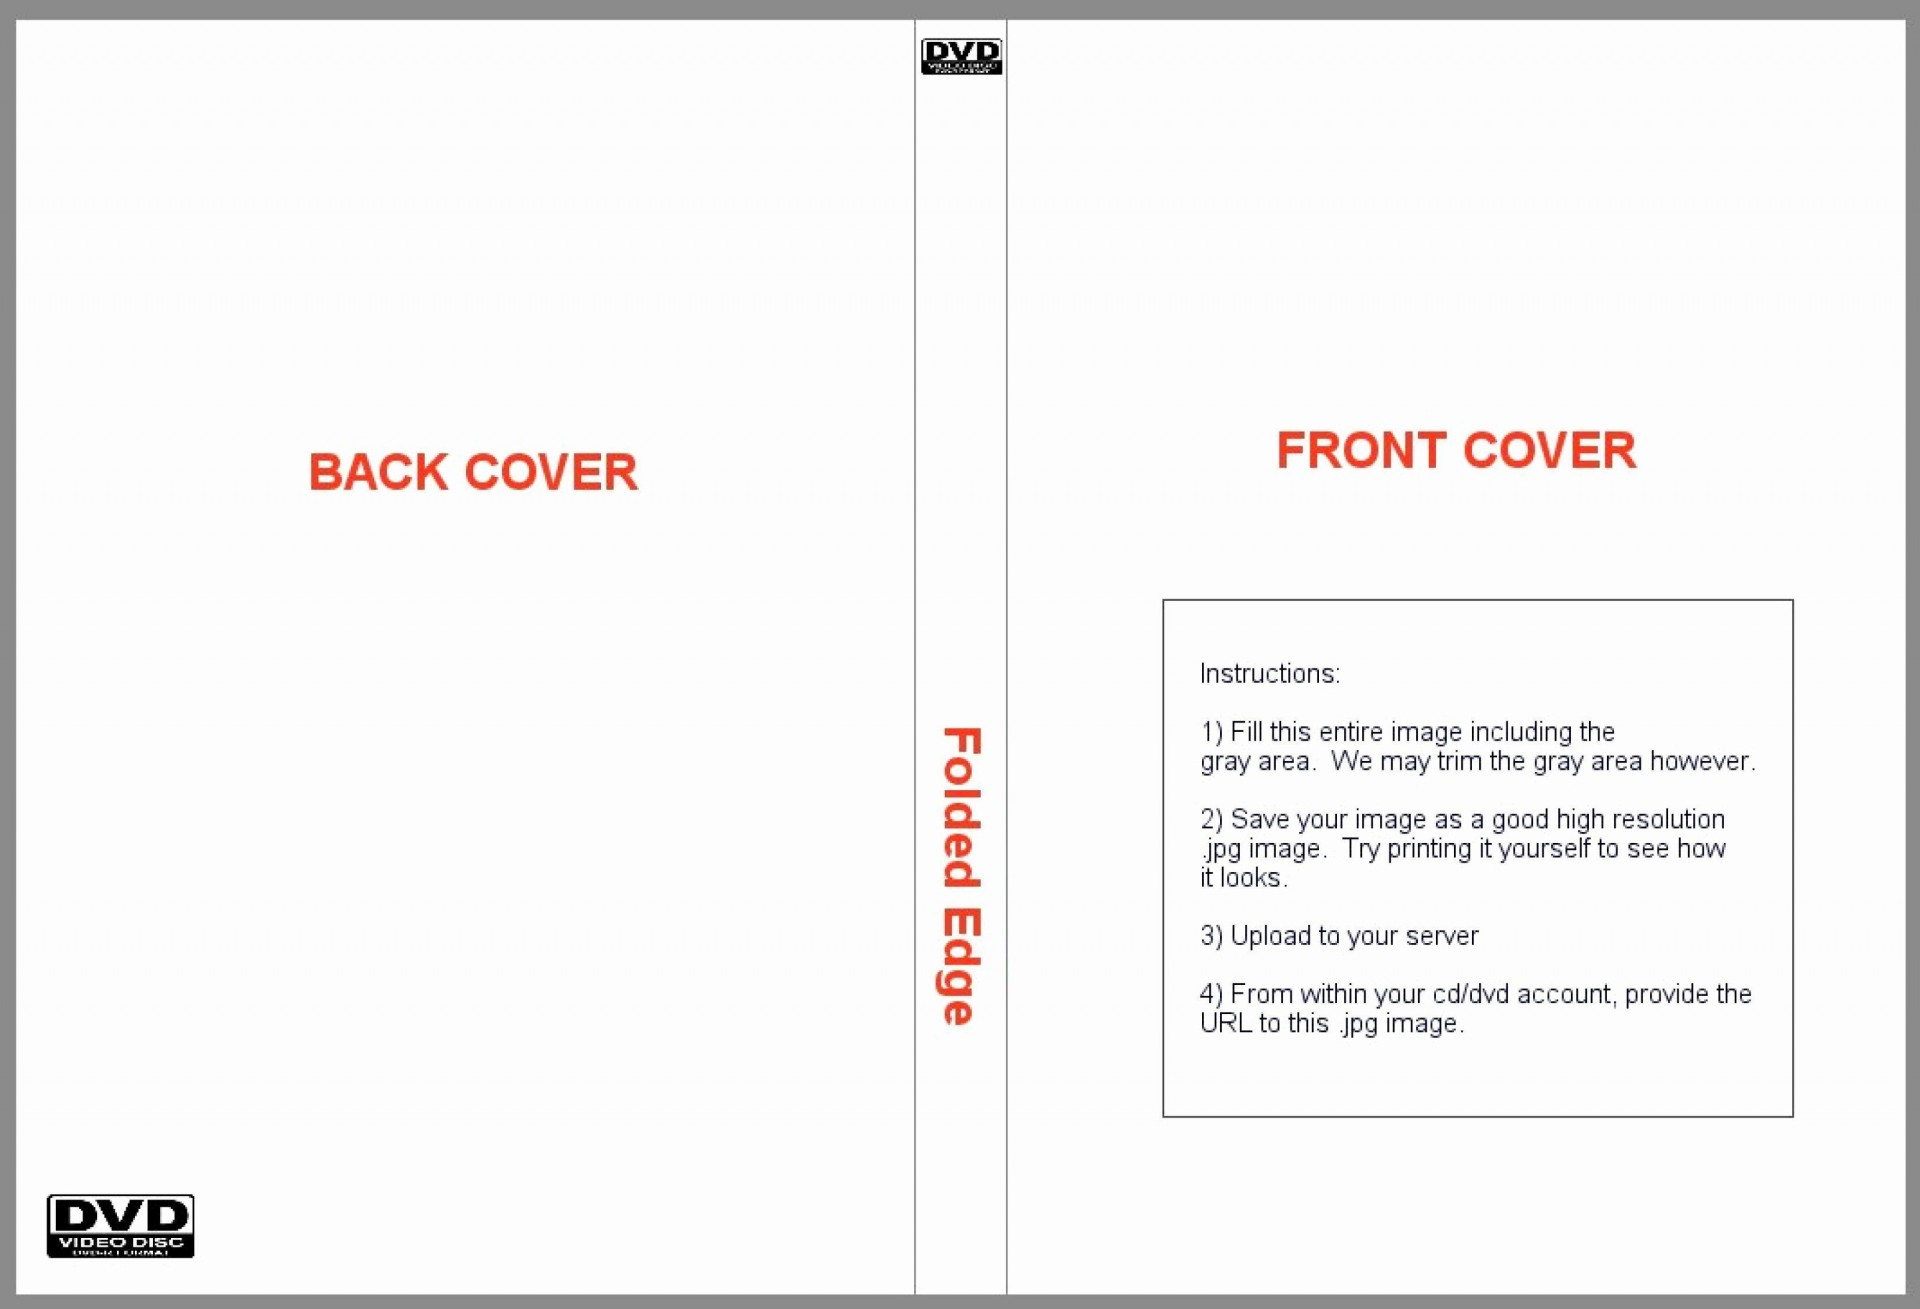 002 Remarkable Printable Cd Sleeve Template Inspiration  Free Case Cover Blank Jewel1920